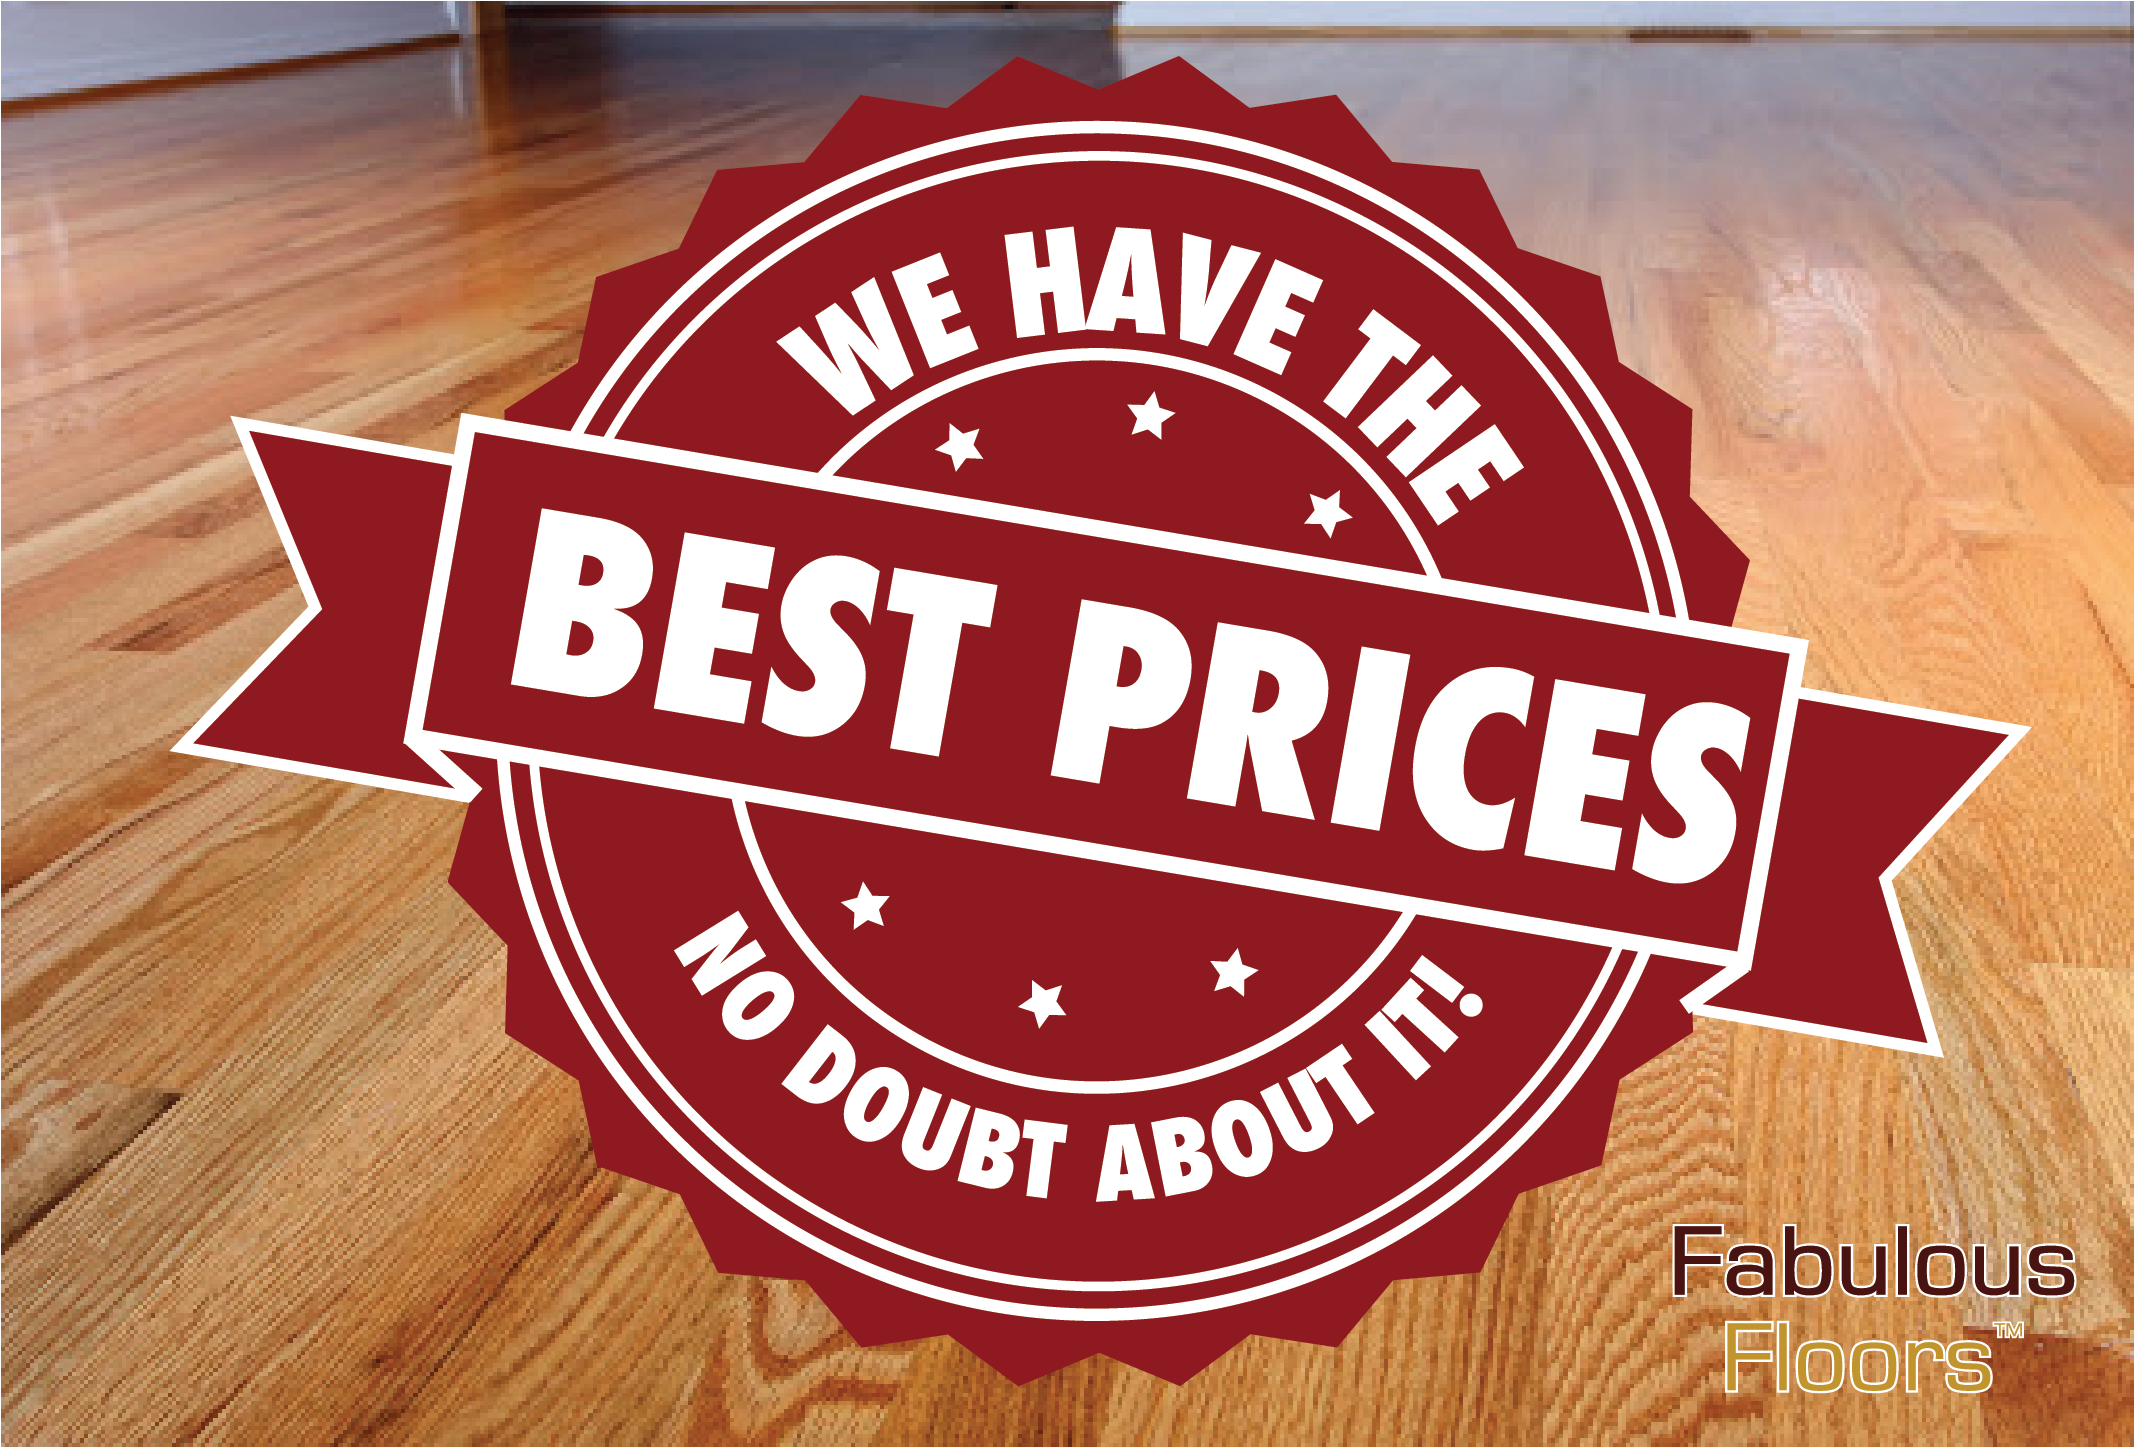 A graphic showing that we have the best prices around